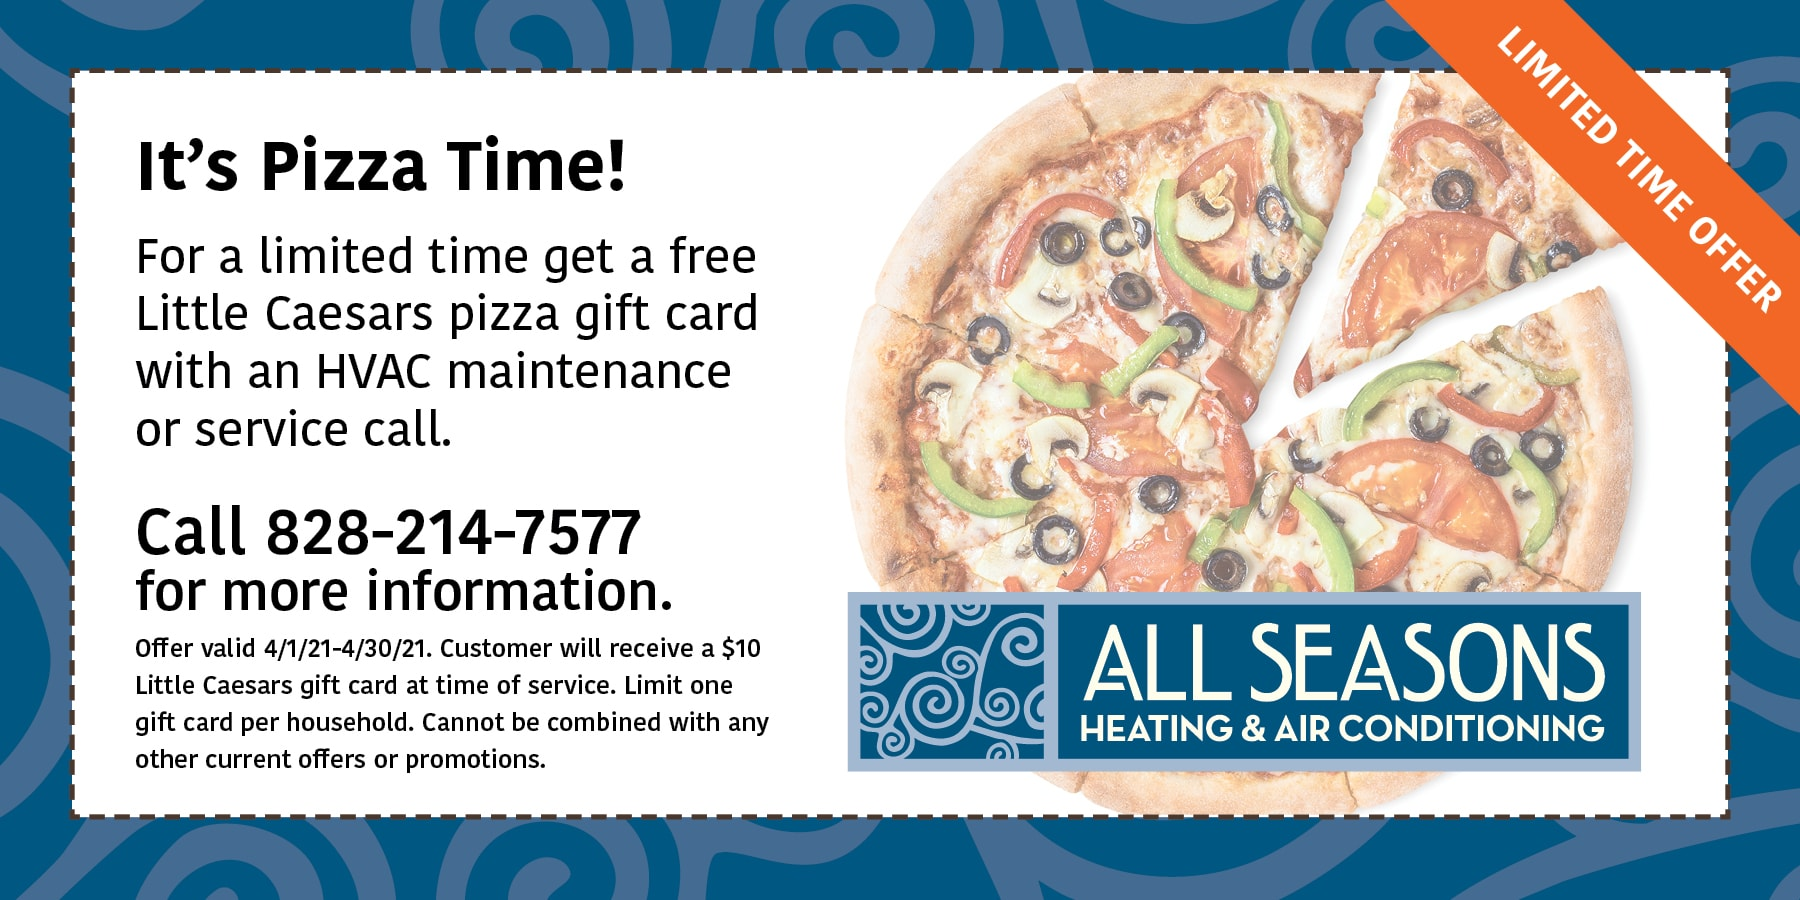 For a limited time get a free Little Caesars pizza gift card with an HVAC maintenance or service call. Offer valid 4/1/21-4/30/21. Customer will receive a $10 Little Caesars gift card at time of service. Limit one gift card per household. Cannot be combined with any other current offers or promotions.